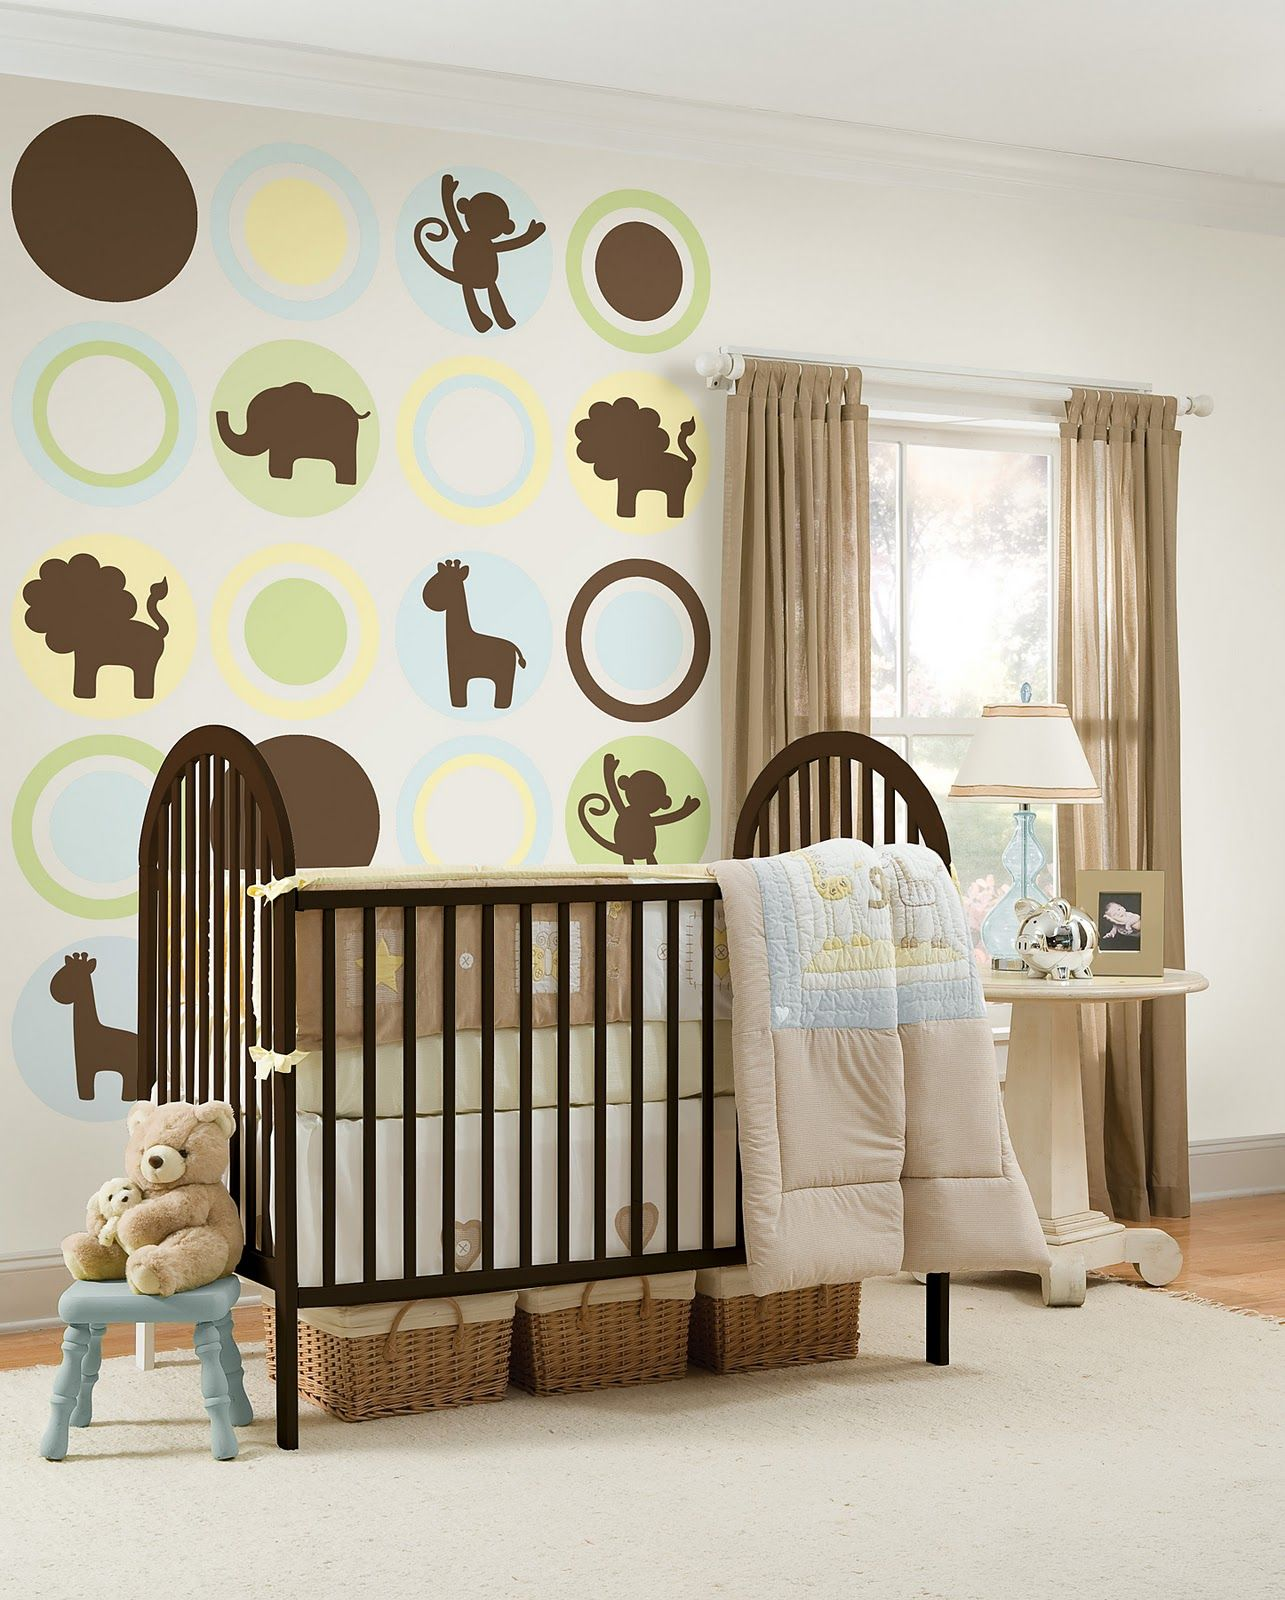 Darling Giraffe, Elephant, Monkey And Lion Shapes For A Nursery